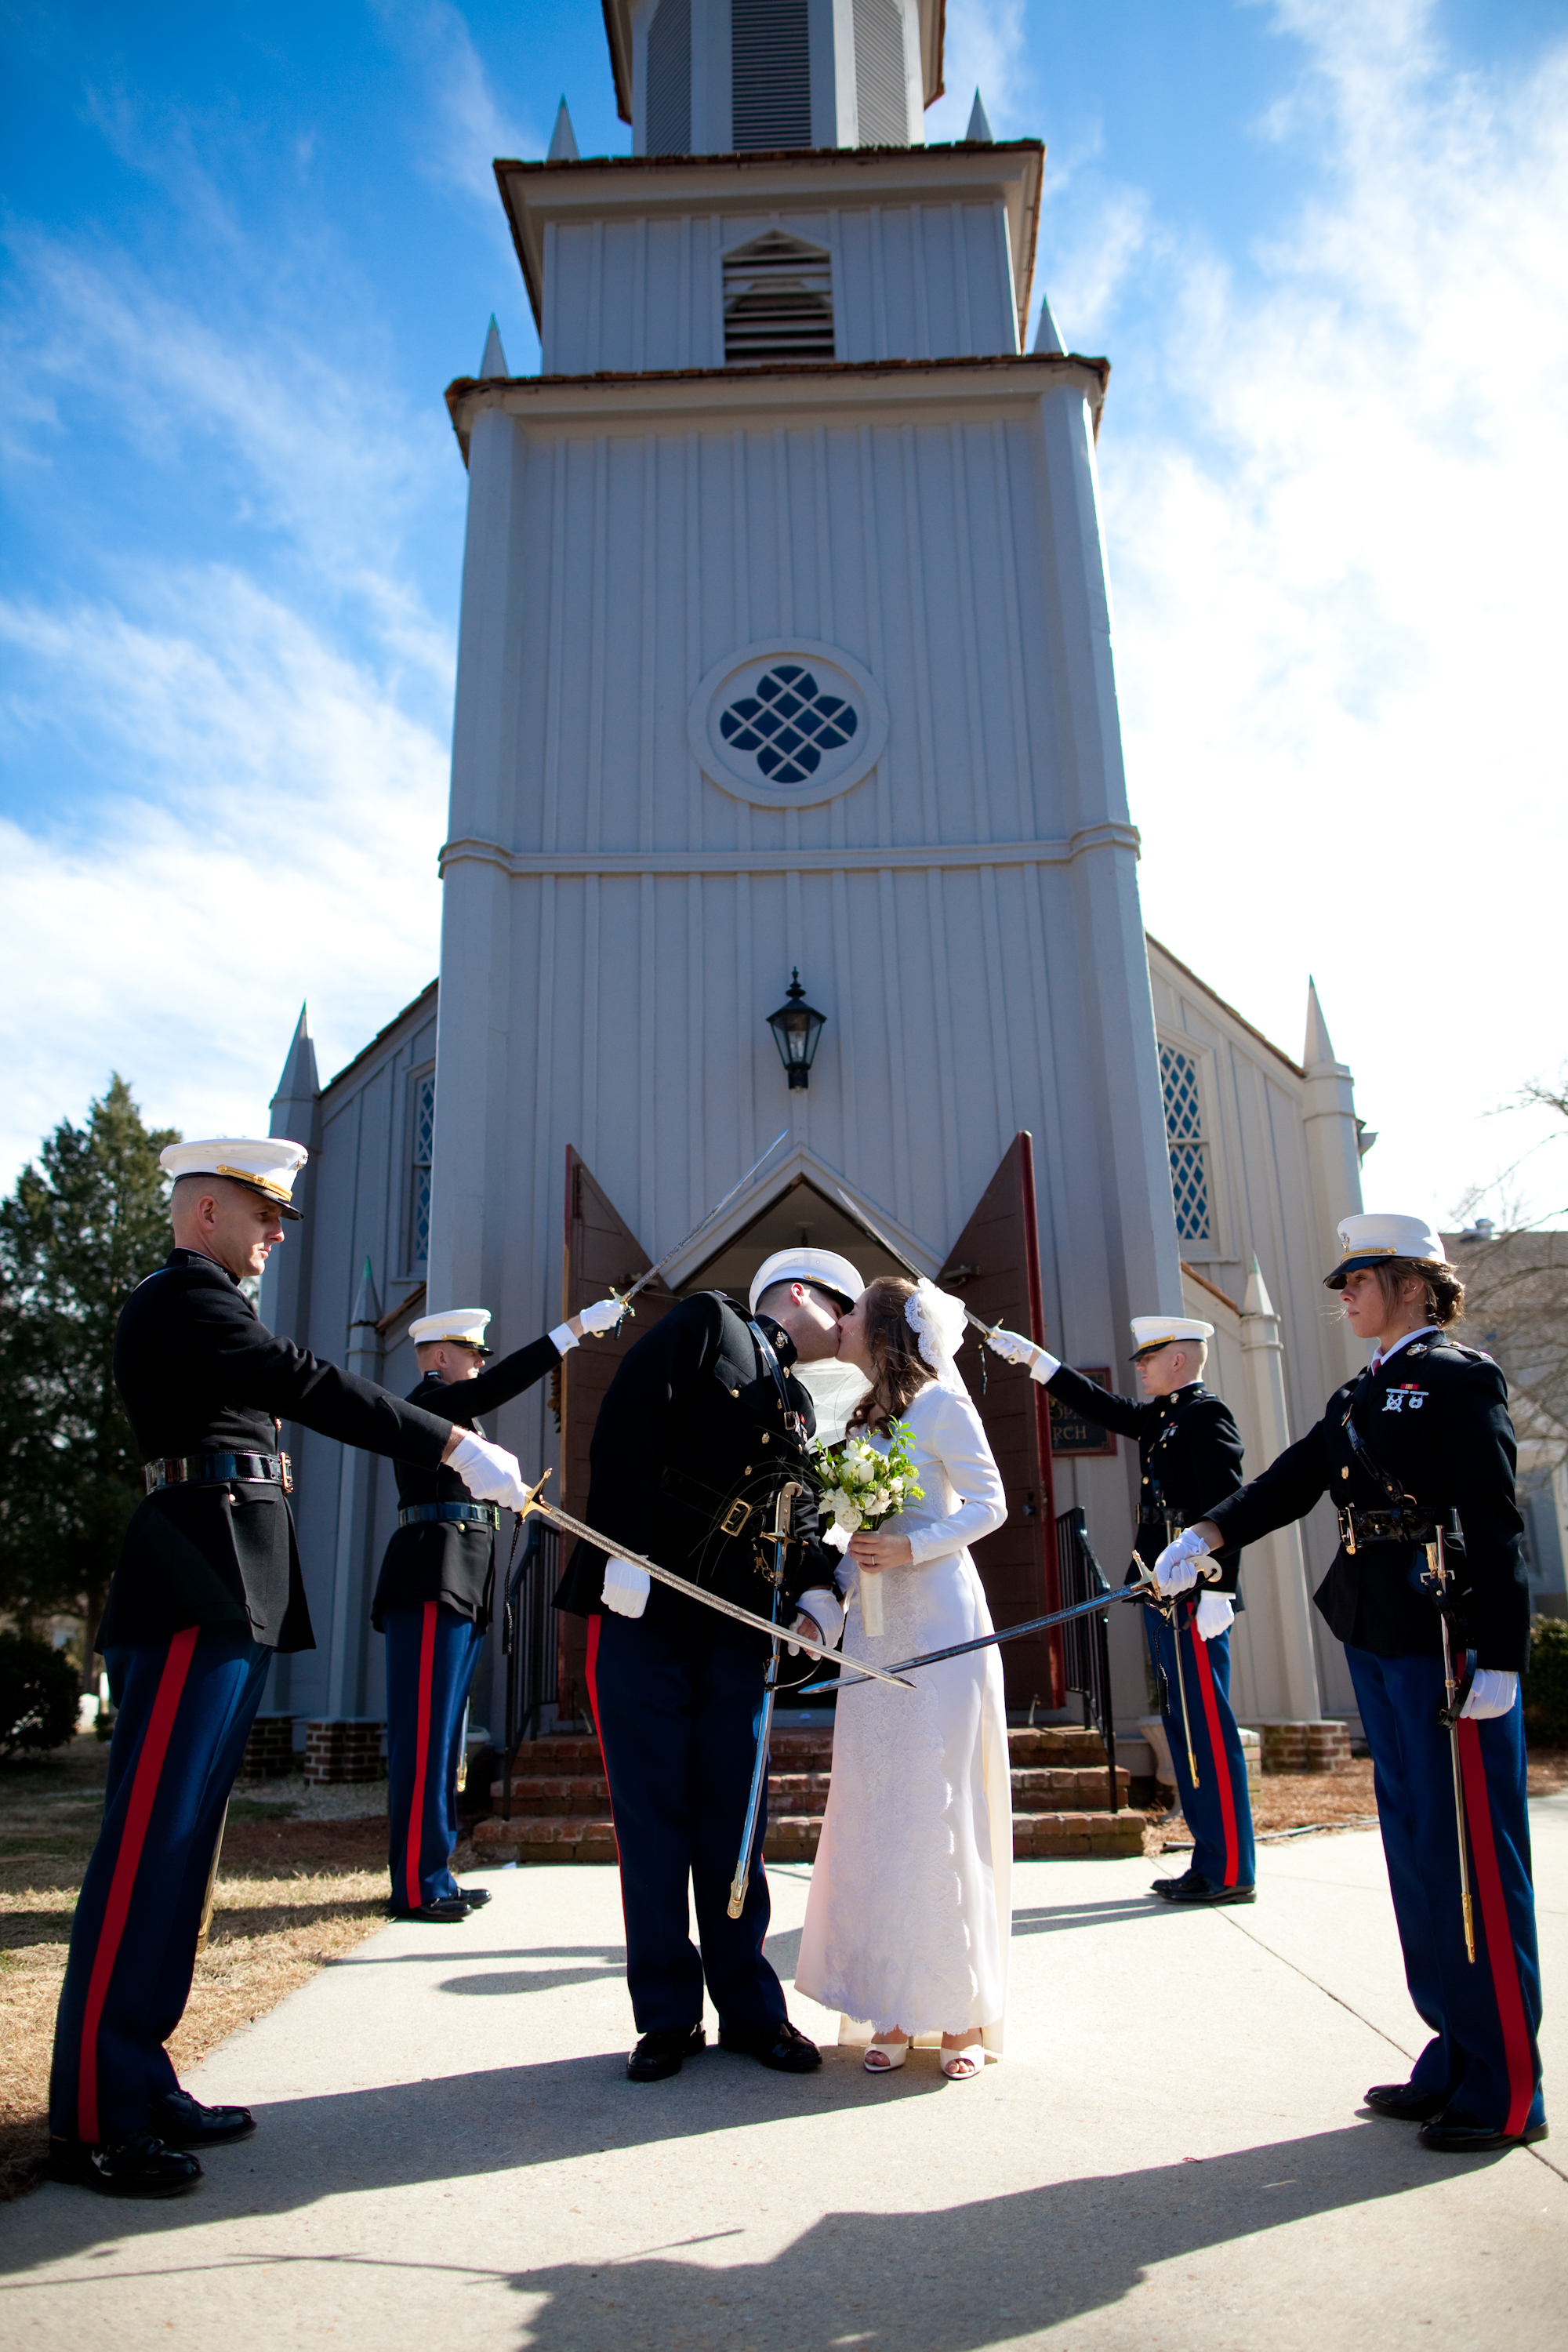 After the pomp and circumstance, not everything is shiny and new in a Marine Corps marriage